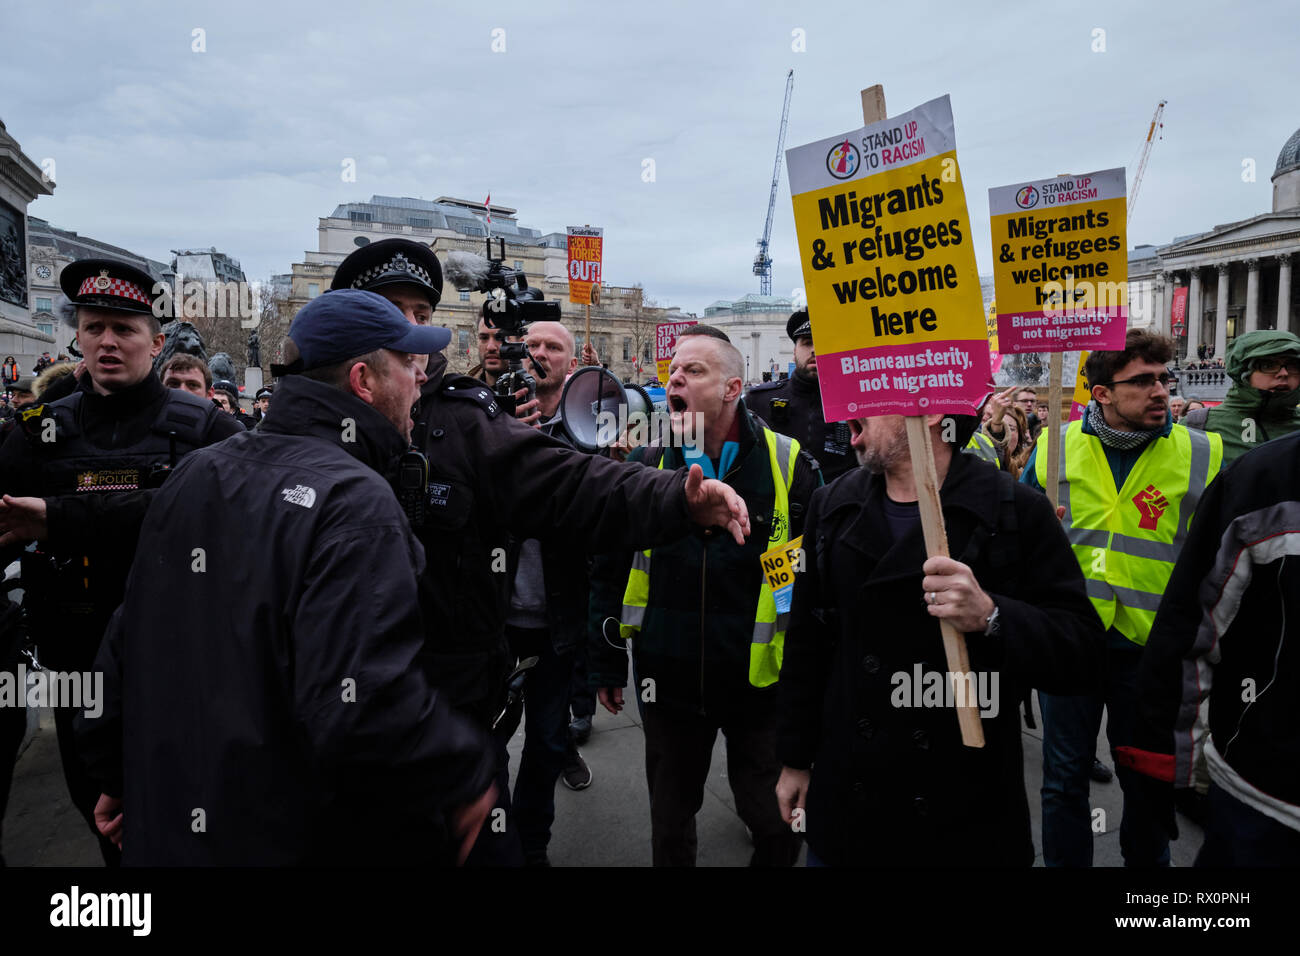 London, UK. 12th Jan, 2019, Yellow Vest UK Demonstration at Trafalgar Square. Confrontation Between Pro and Against Brexiteers. - Stock Image